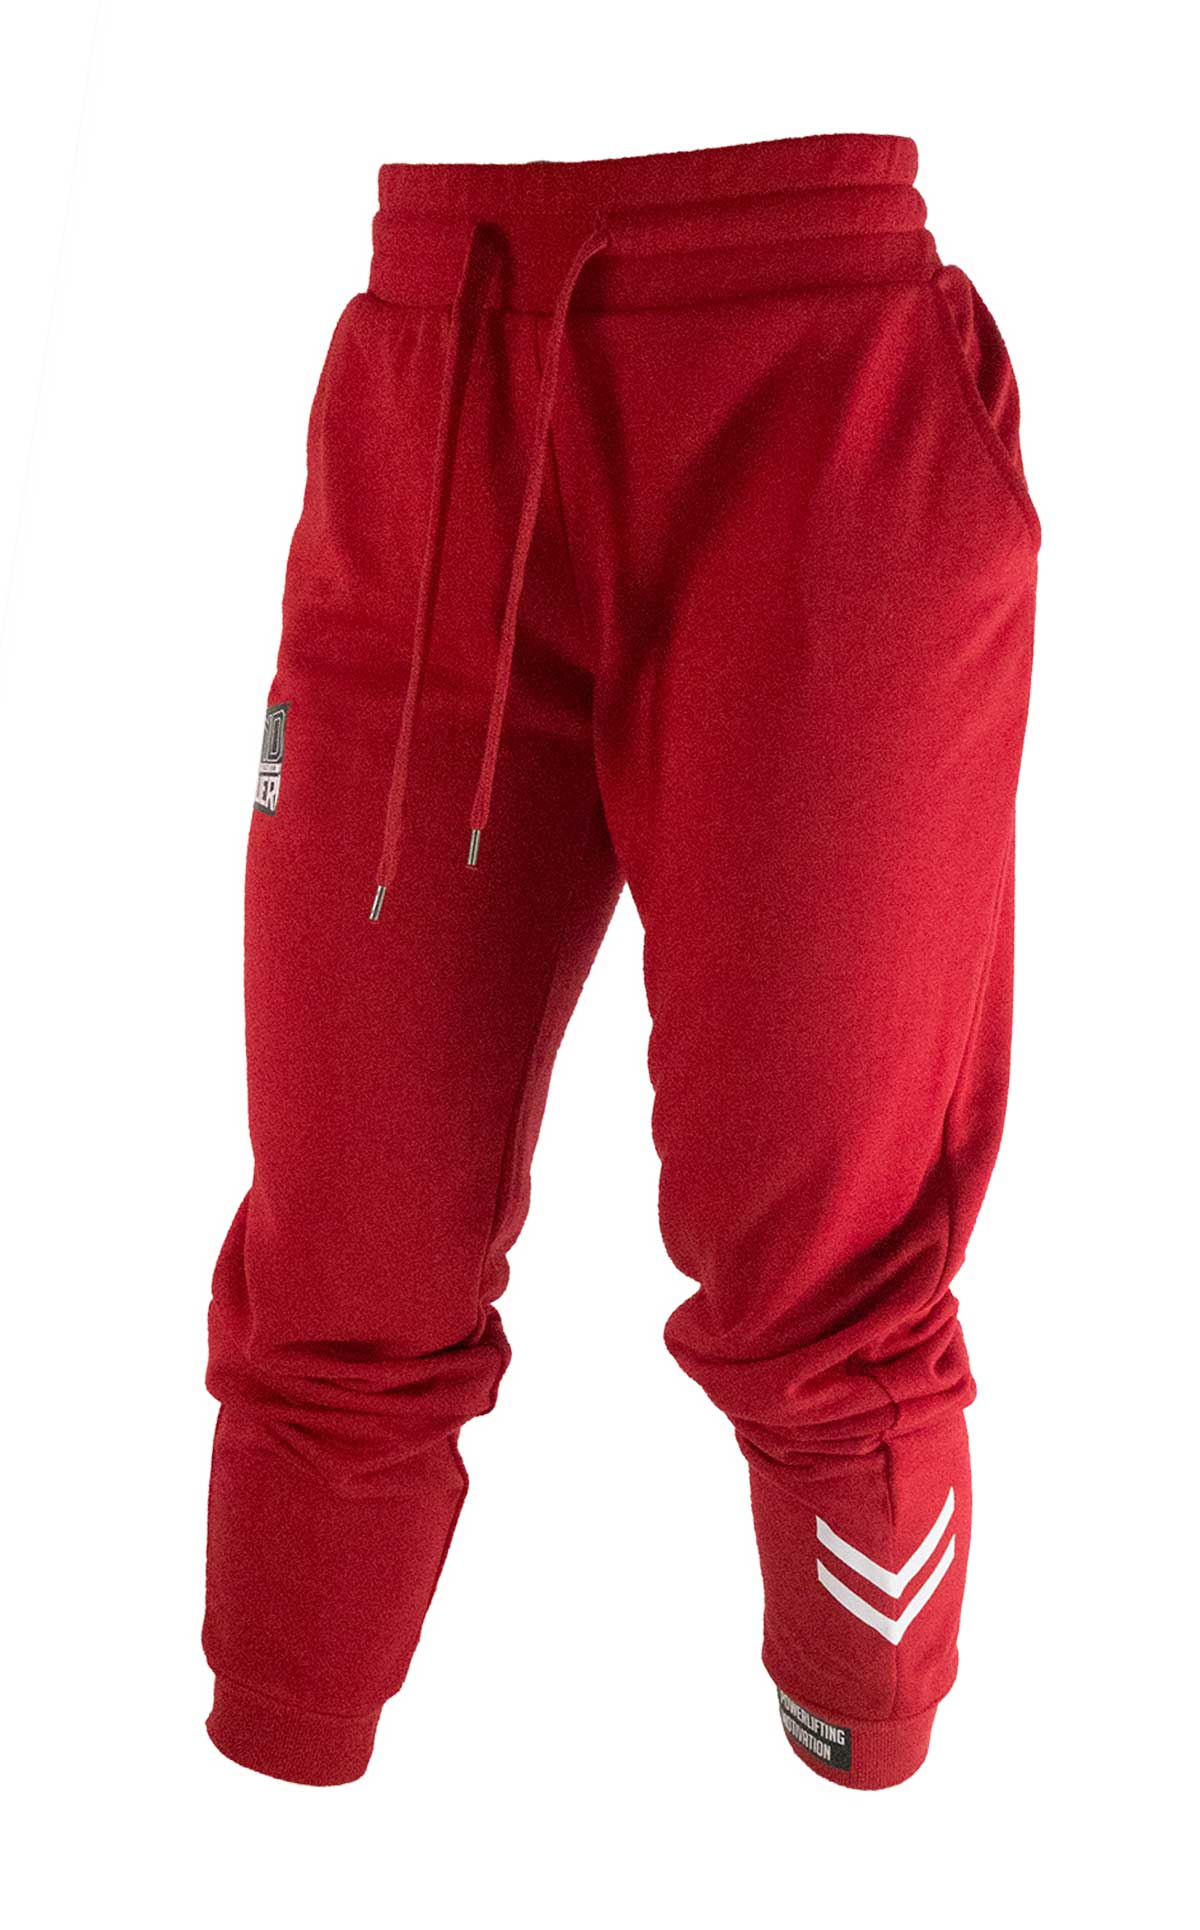 PM women's jogger pants red